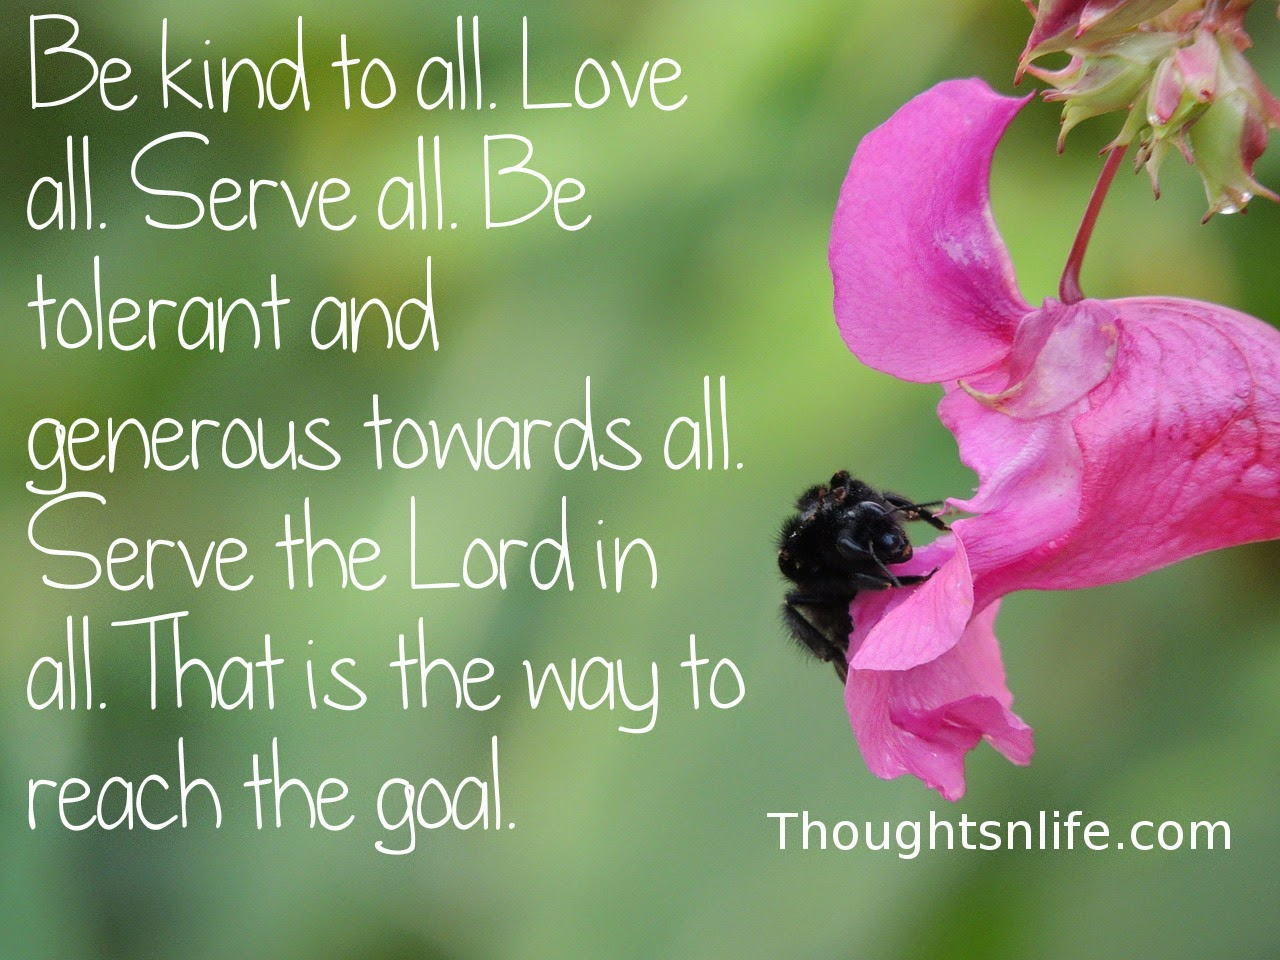 Be kind to all. Love all. Serve all. Be tolerant and generous towards all. Serve the Lord in all. That is the way to reach the goal.